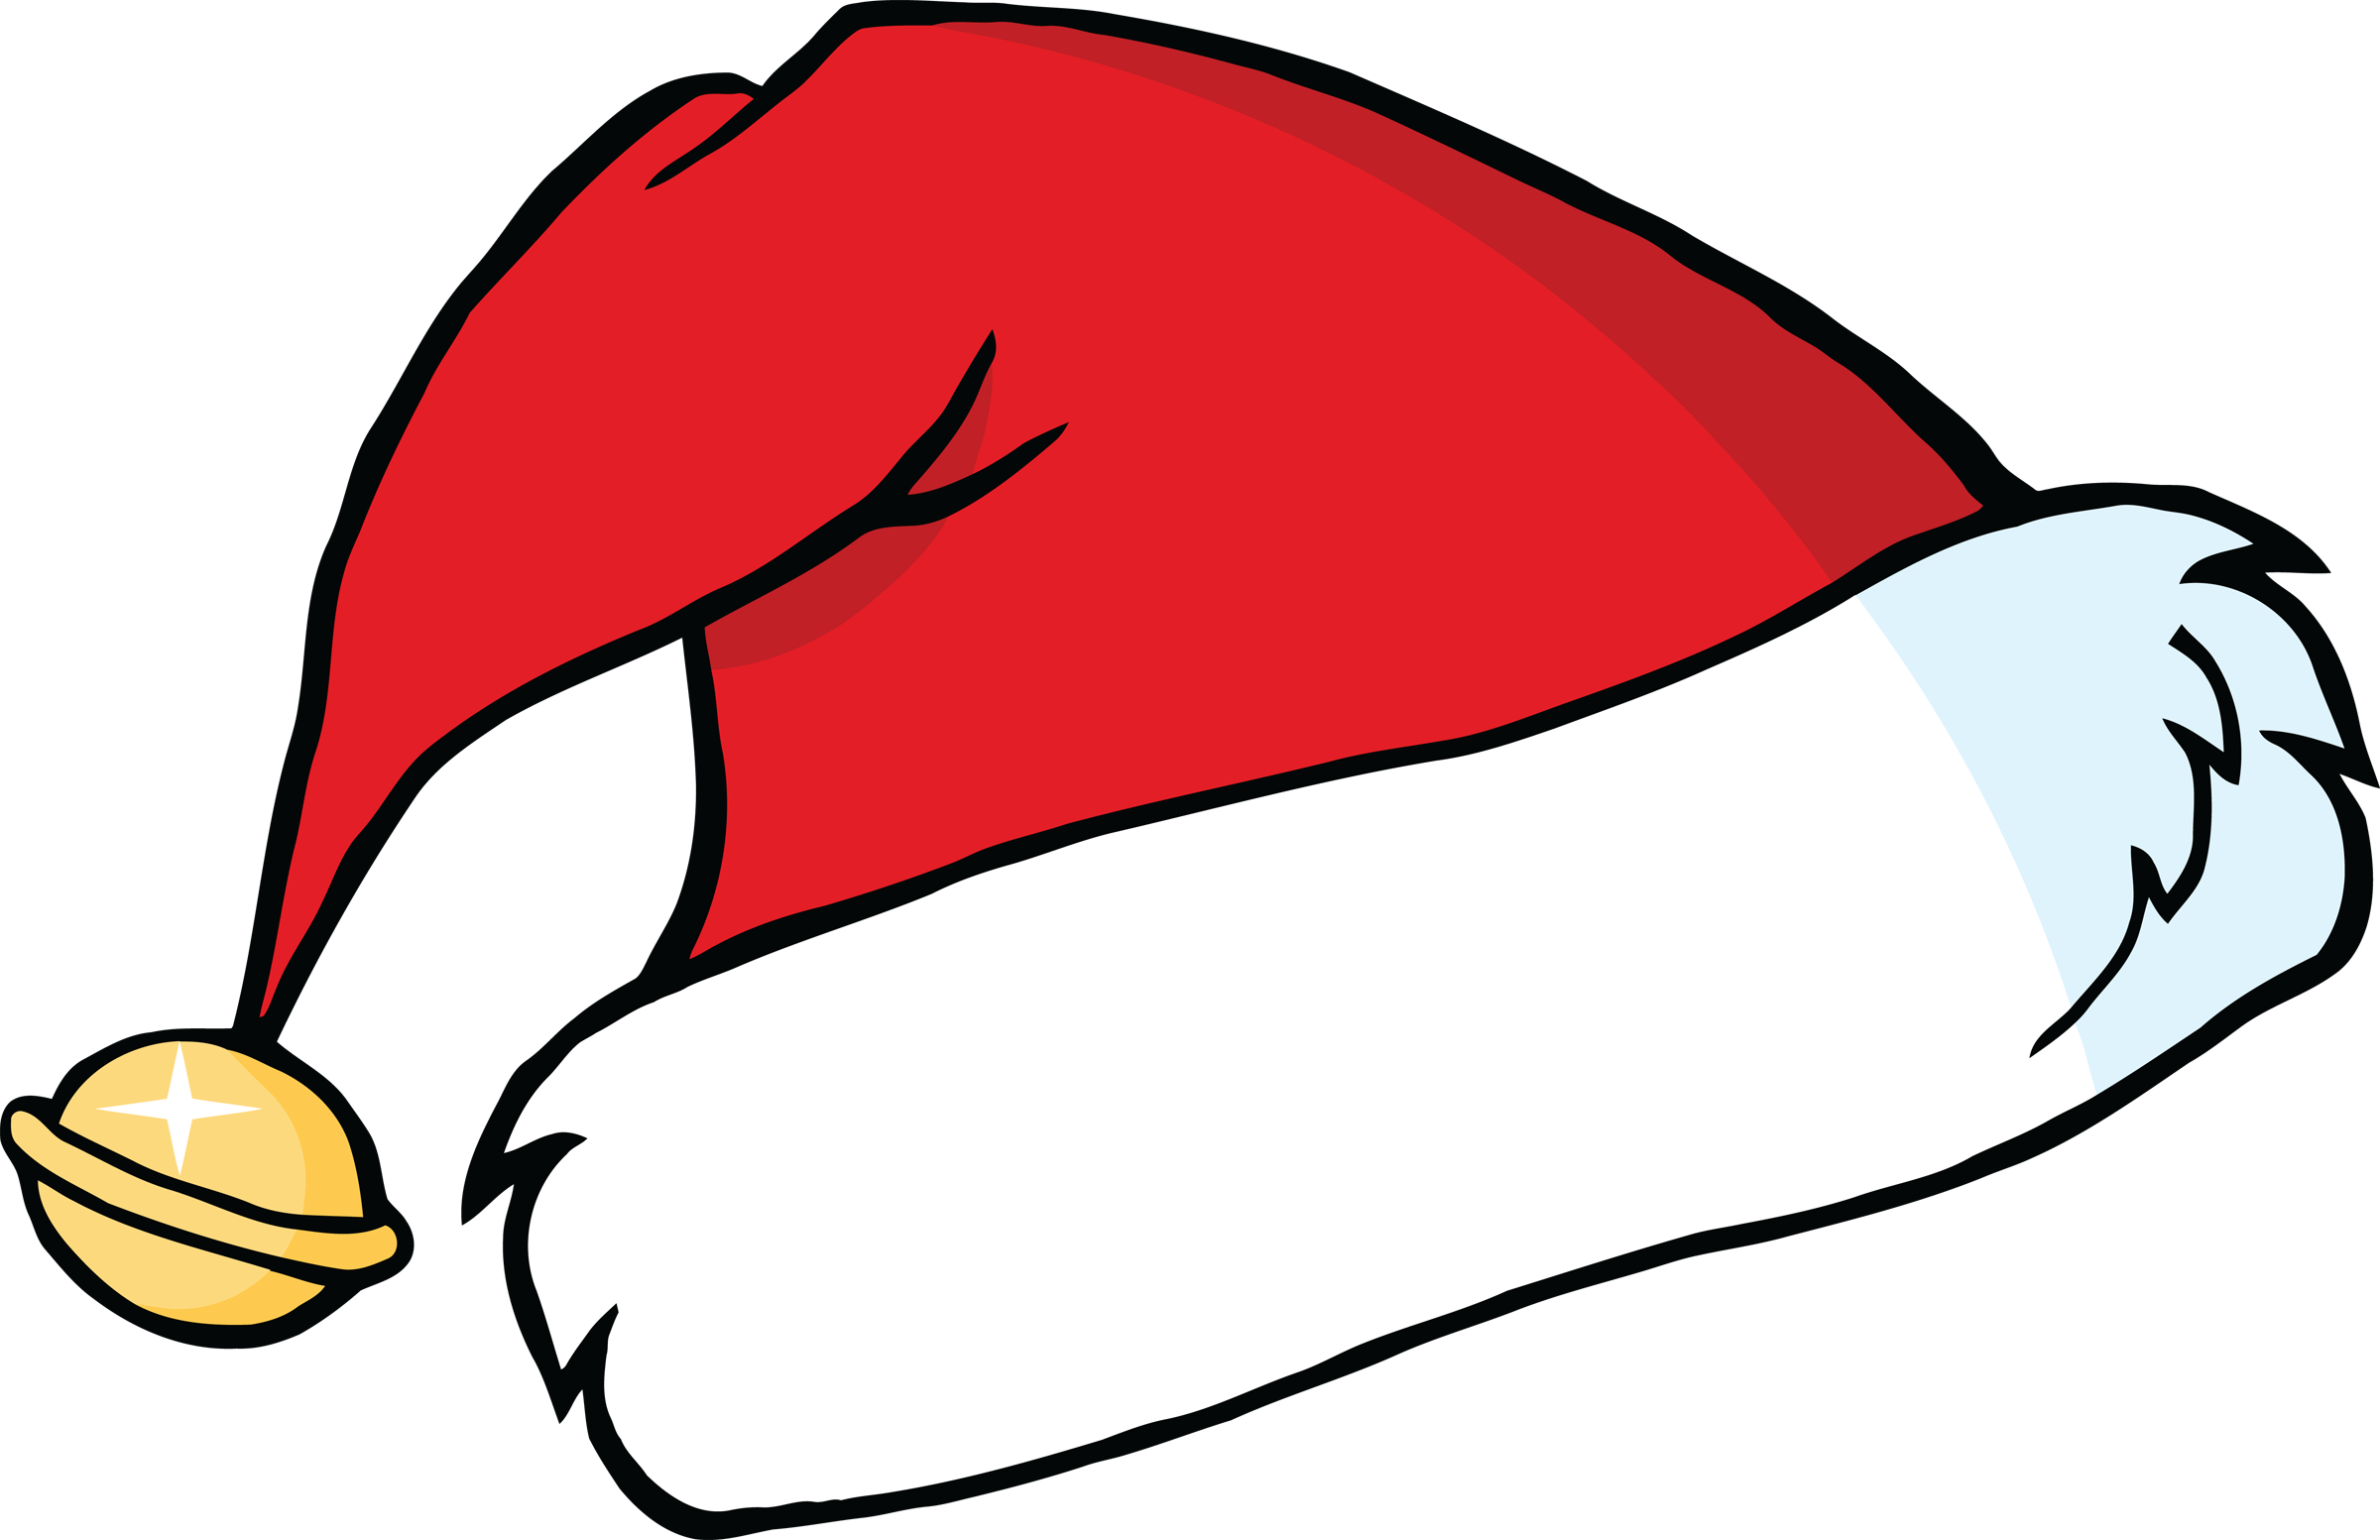 Download And Use Christmas Hat Png Clipart image #19606